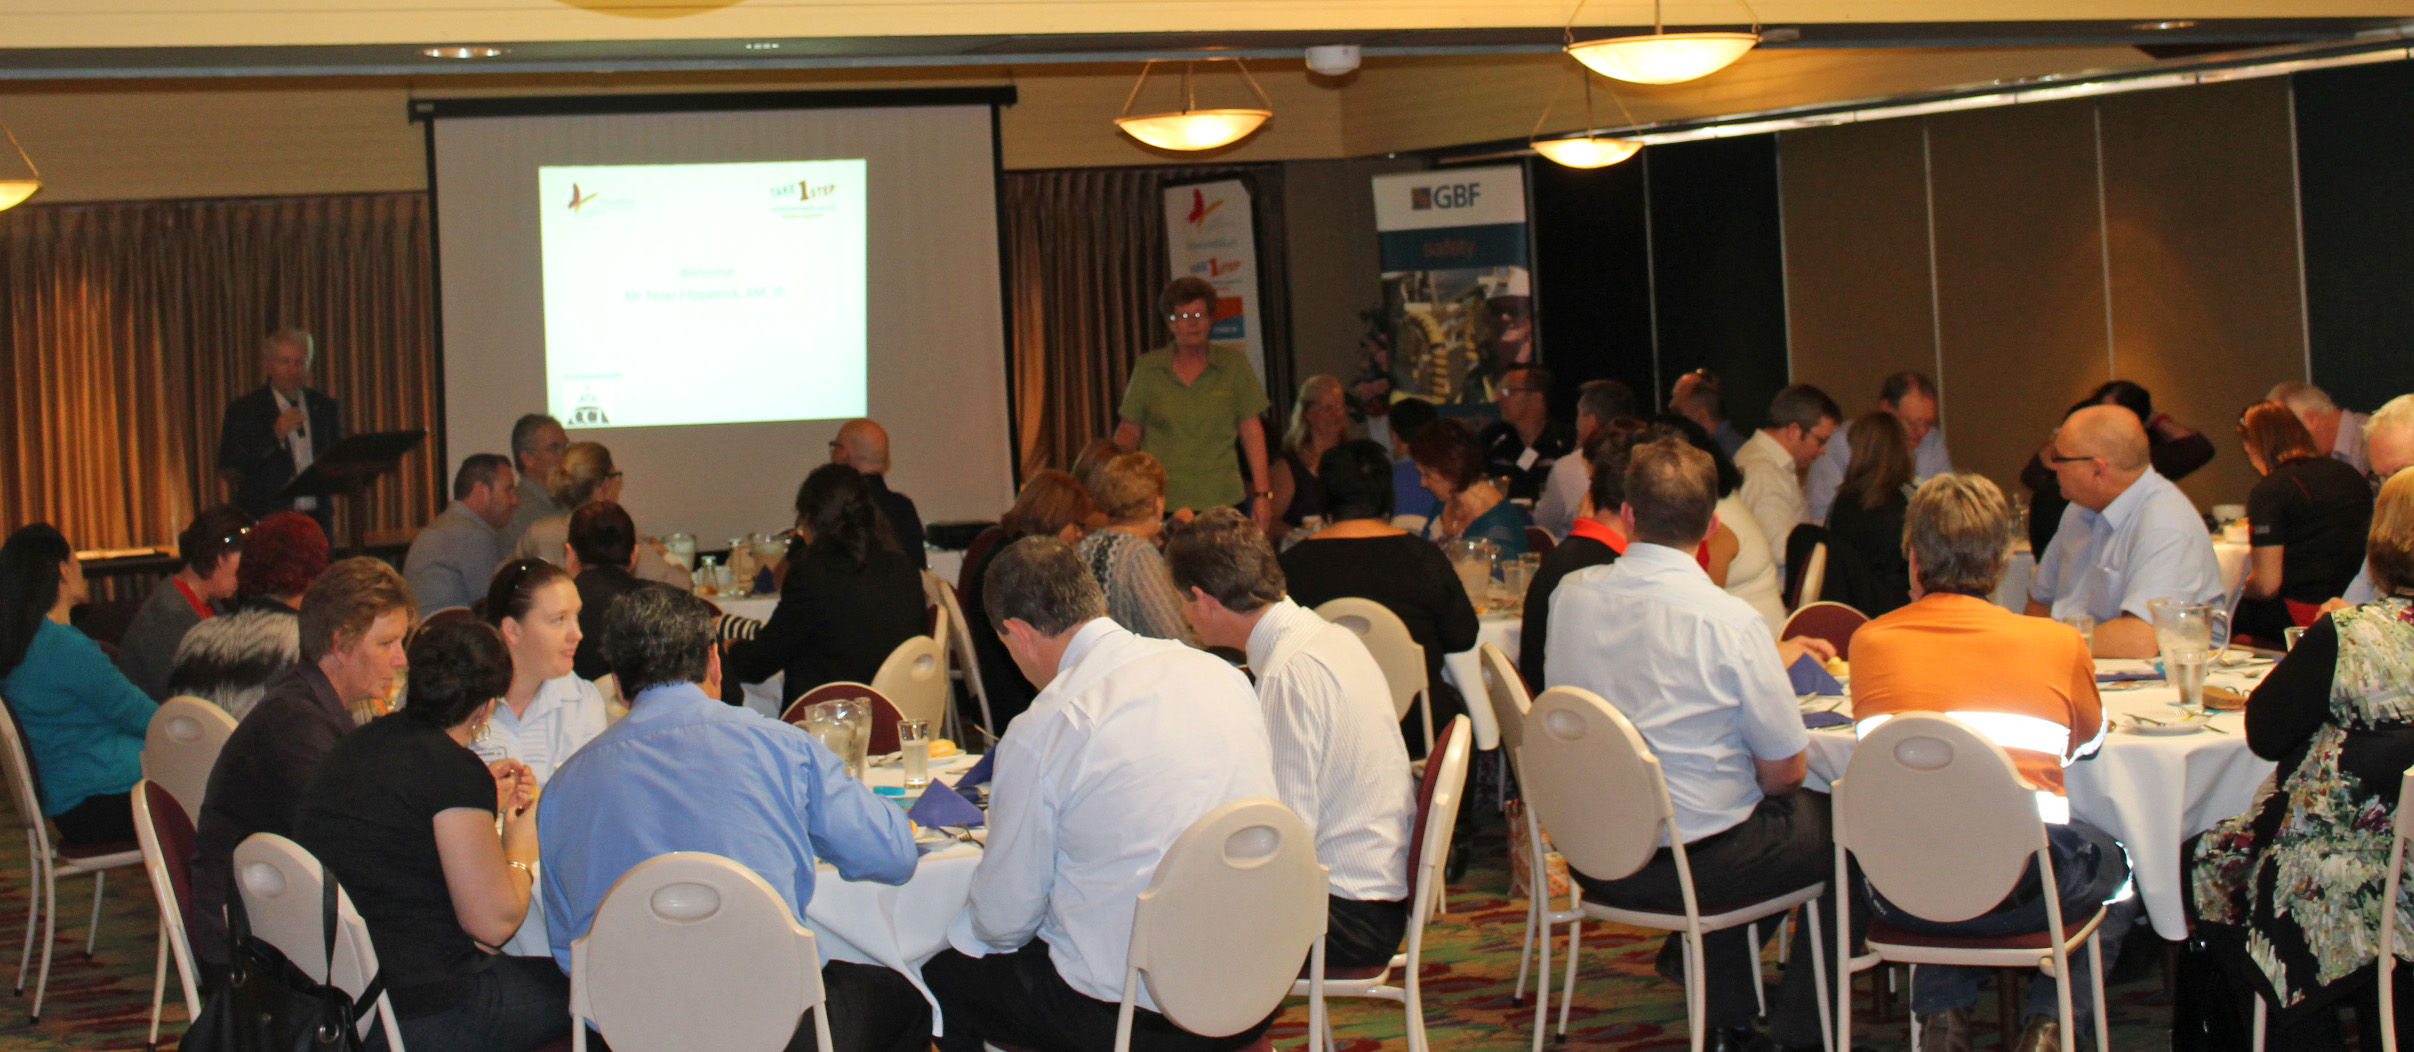 Talking with business owners and managers at the workplace lunch presentation in Kalgoorlie.